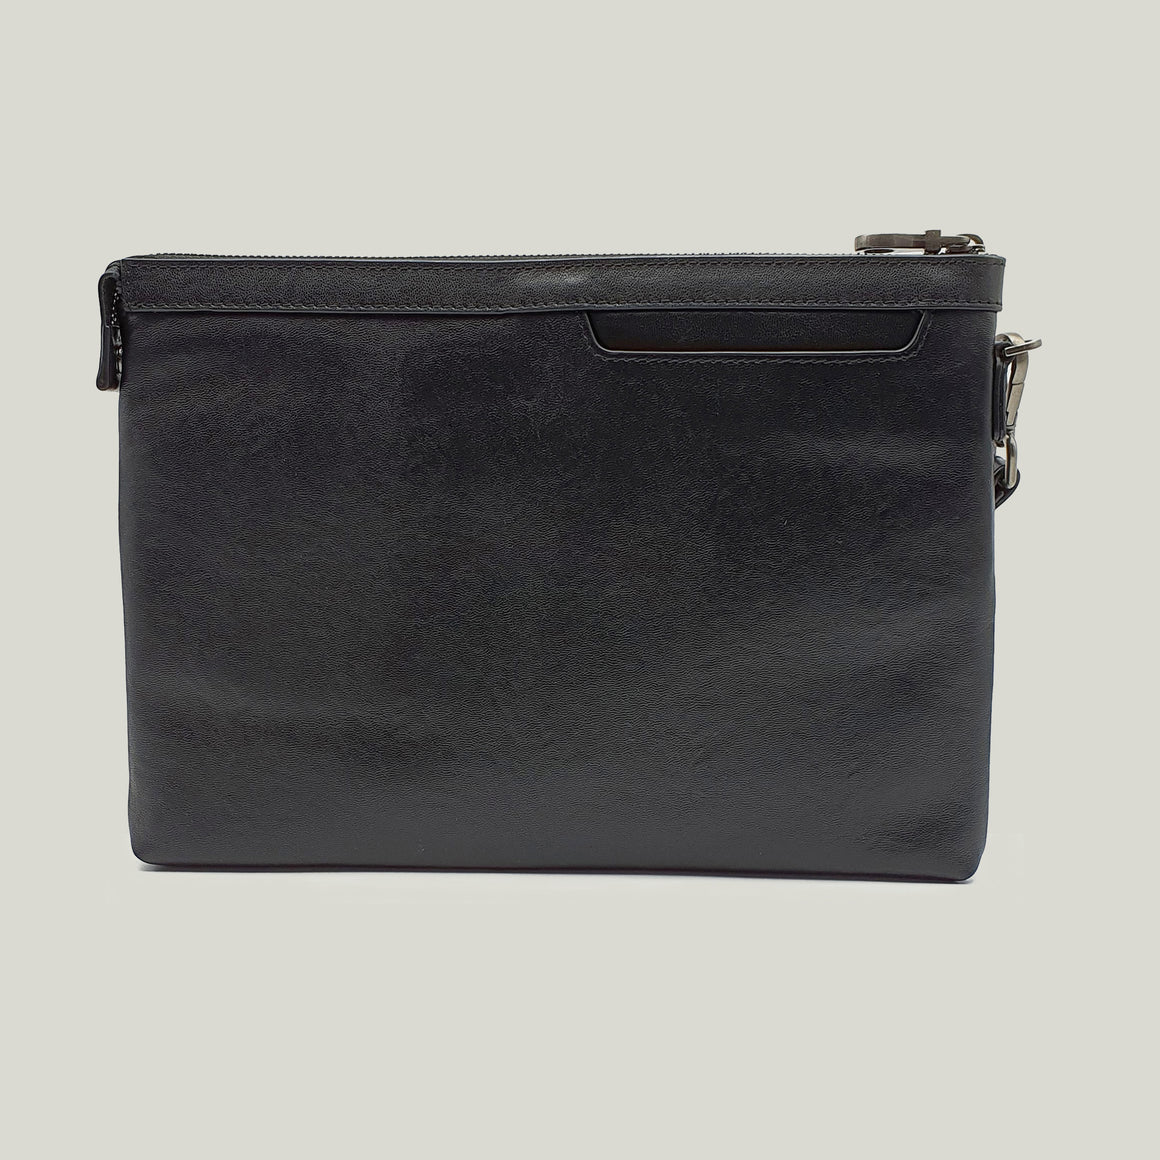 Ipad pouch leather, Series-Five Black